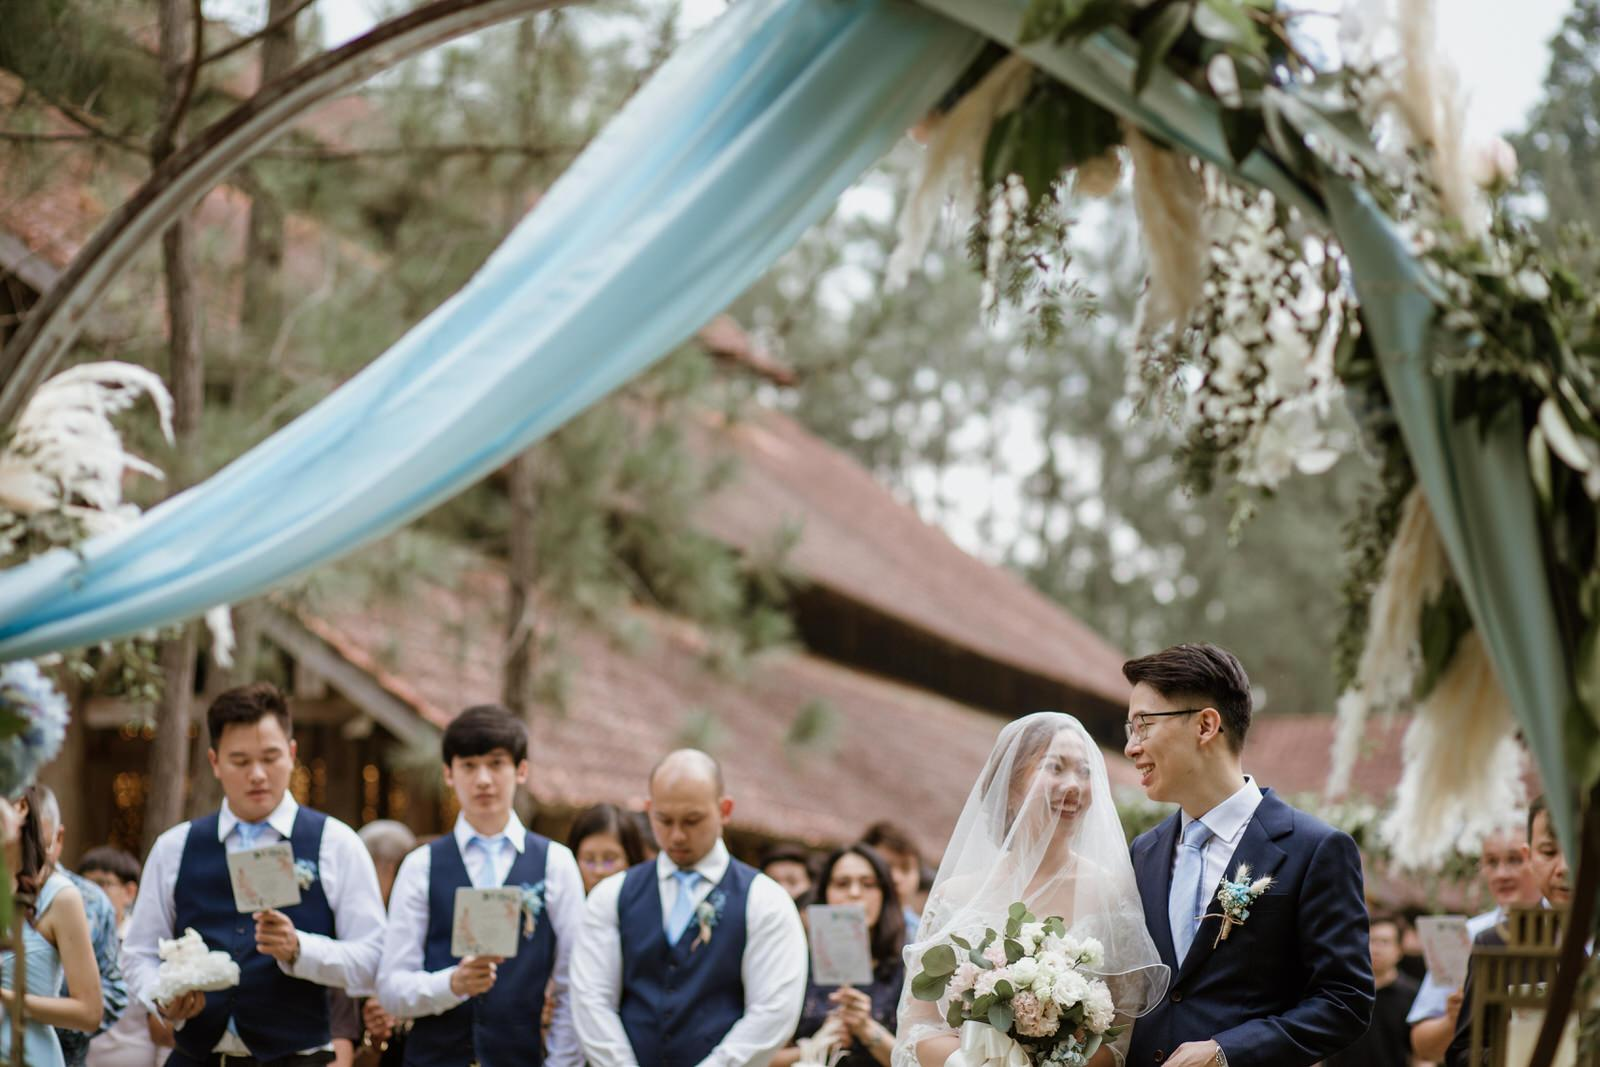 Bride and groom Outdoor Worship Tanarimba Rustic Garden Weding Janda baik Decoration Photobooth Cliff Choong Photography